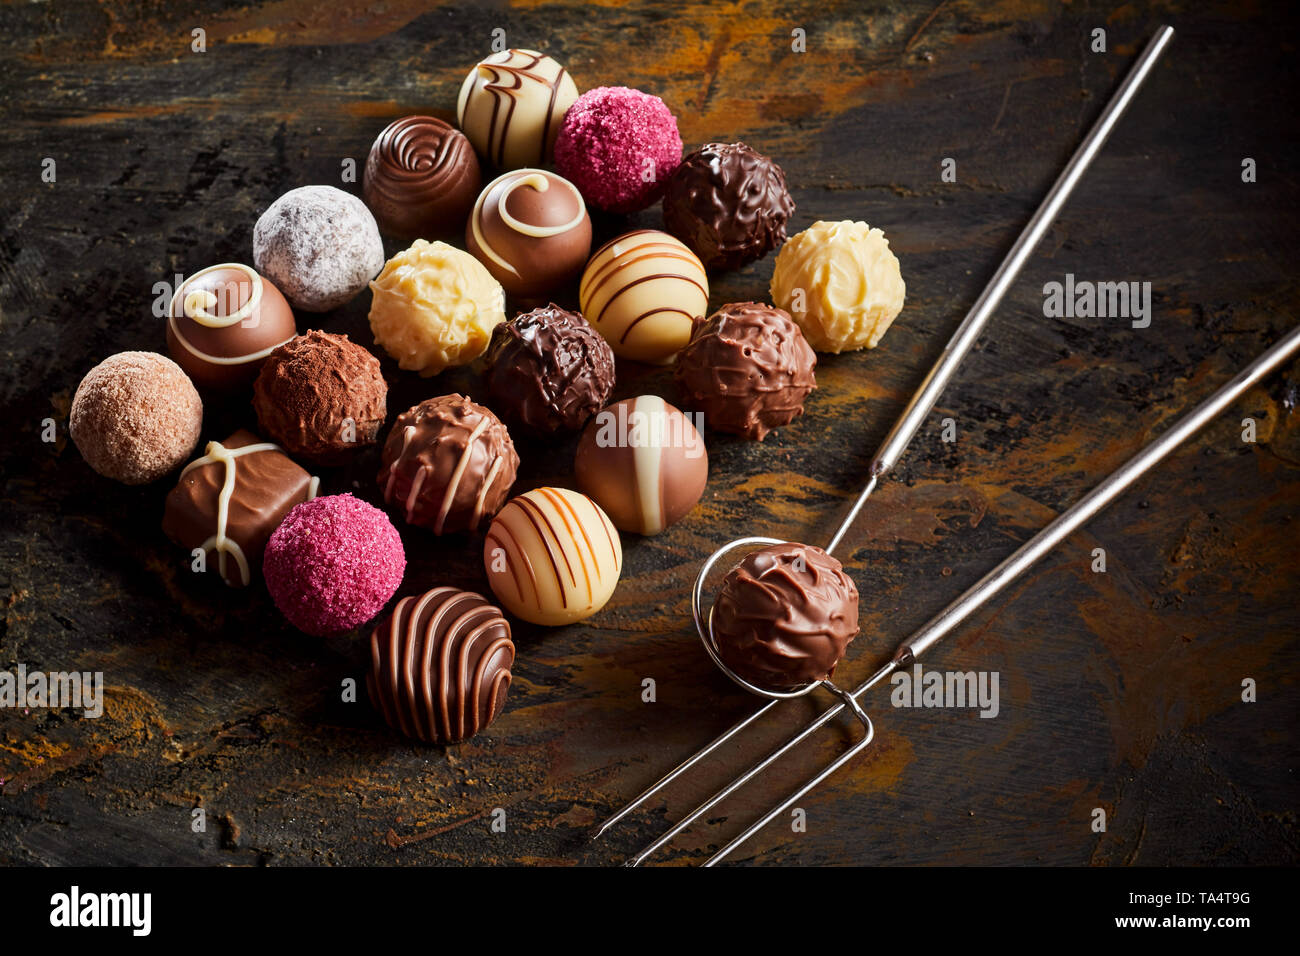 Handmade chocolate praline bonbon display with a neat rectangle of assorted fondants on rustic wood with wire lifter and fork Stock Photo